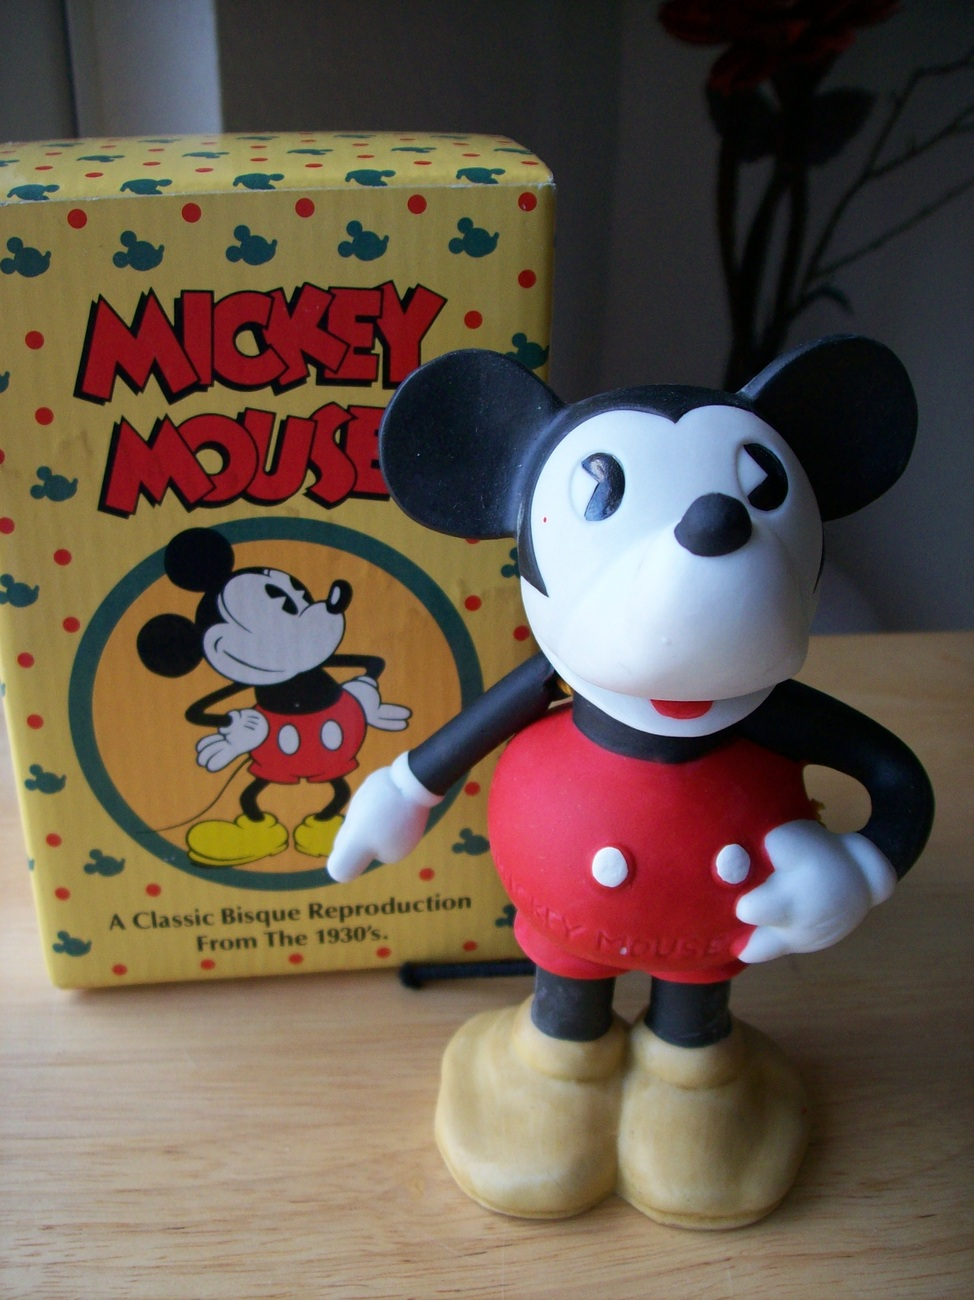 Primary image for Disney Mickey Mouse Reproduction Bisque Porcelain Figurine